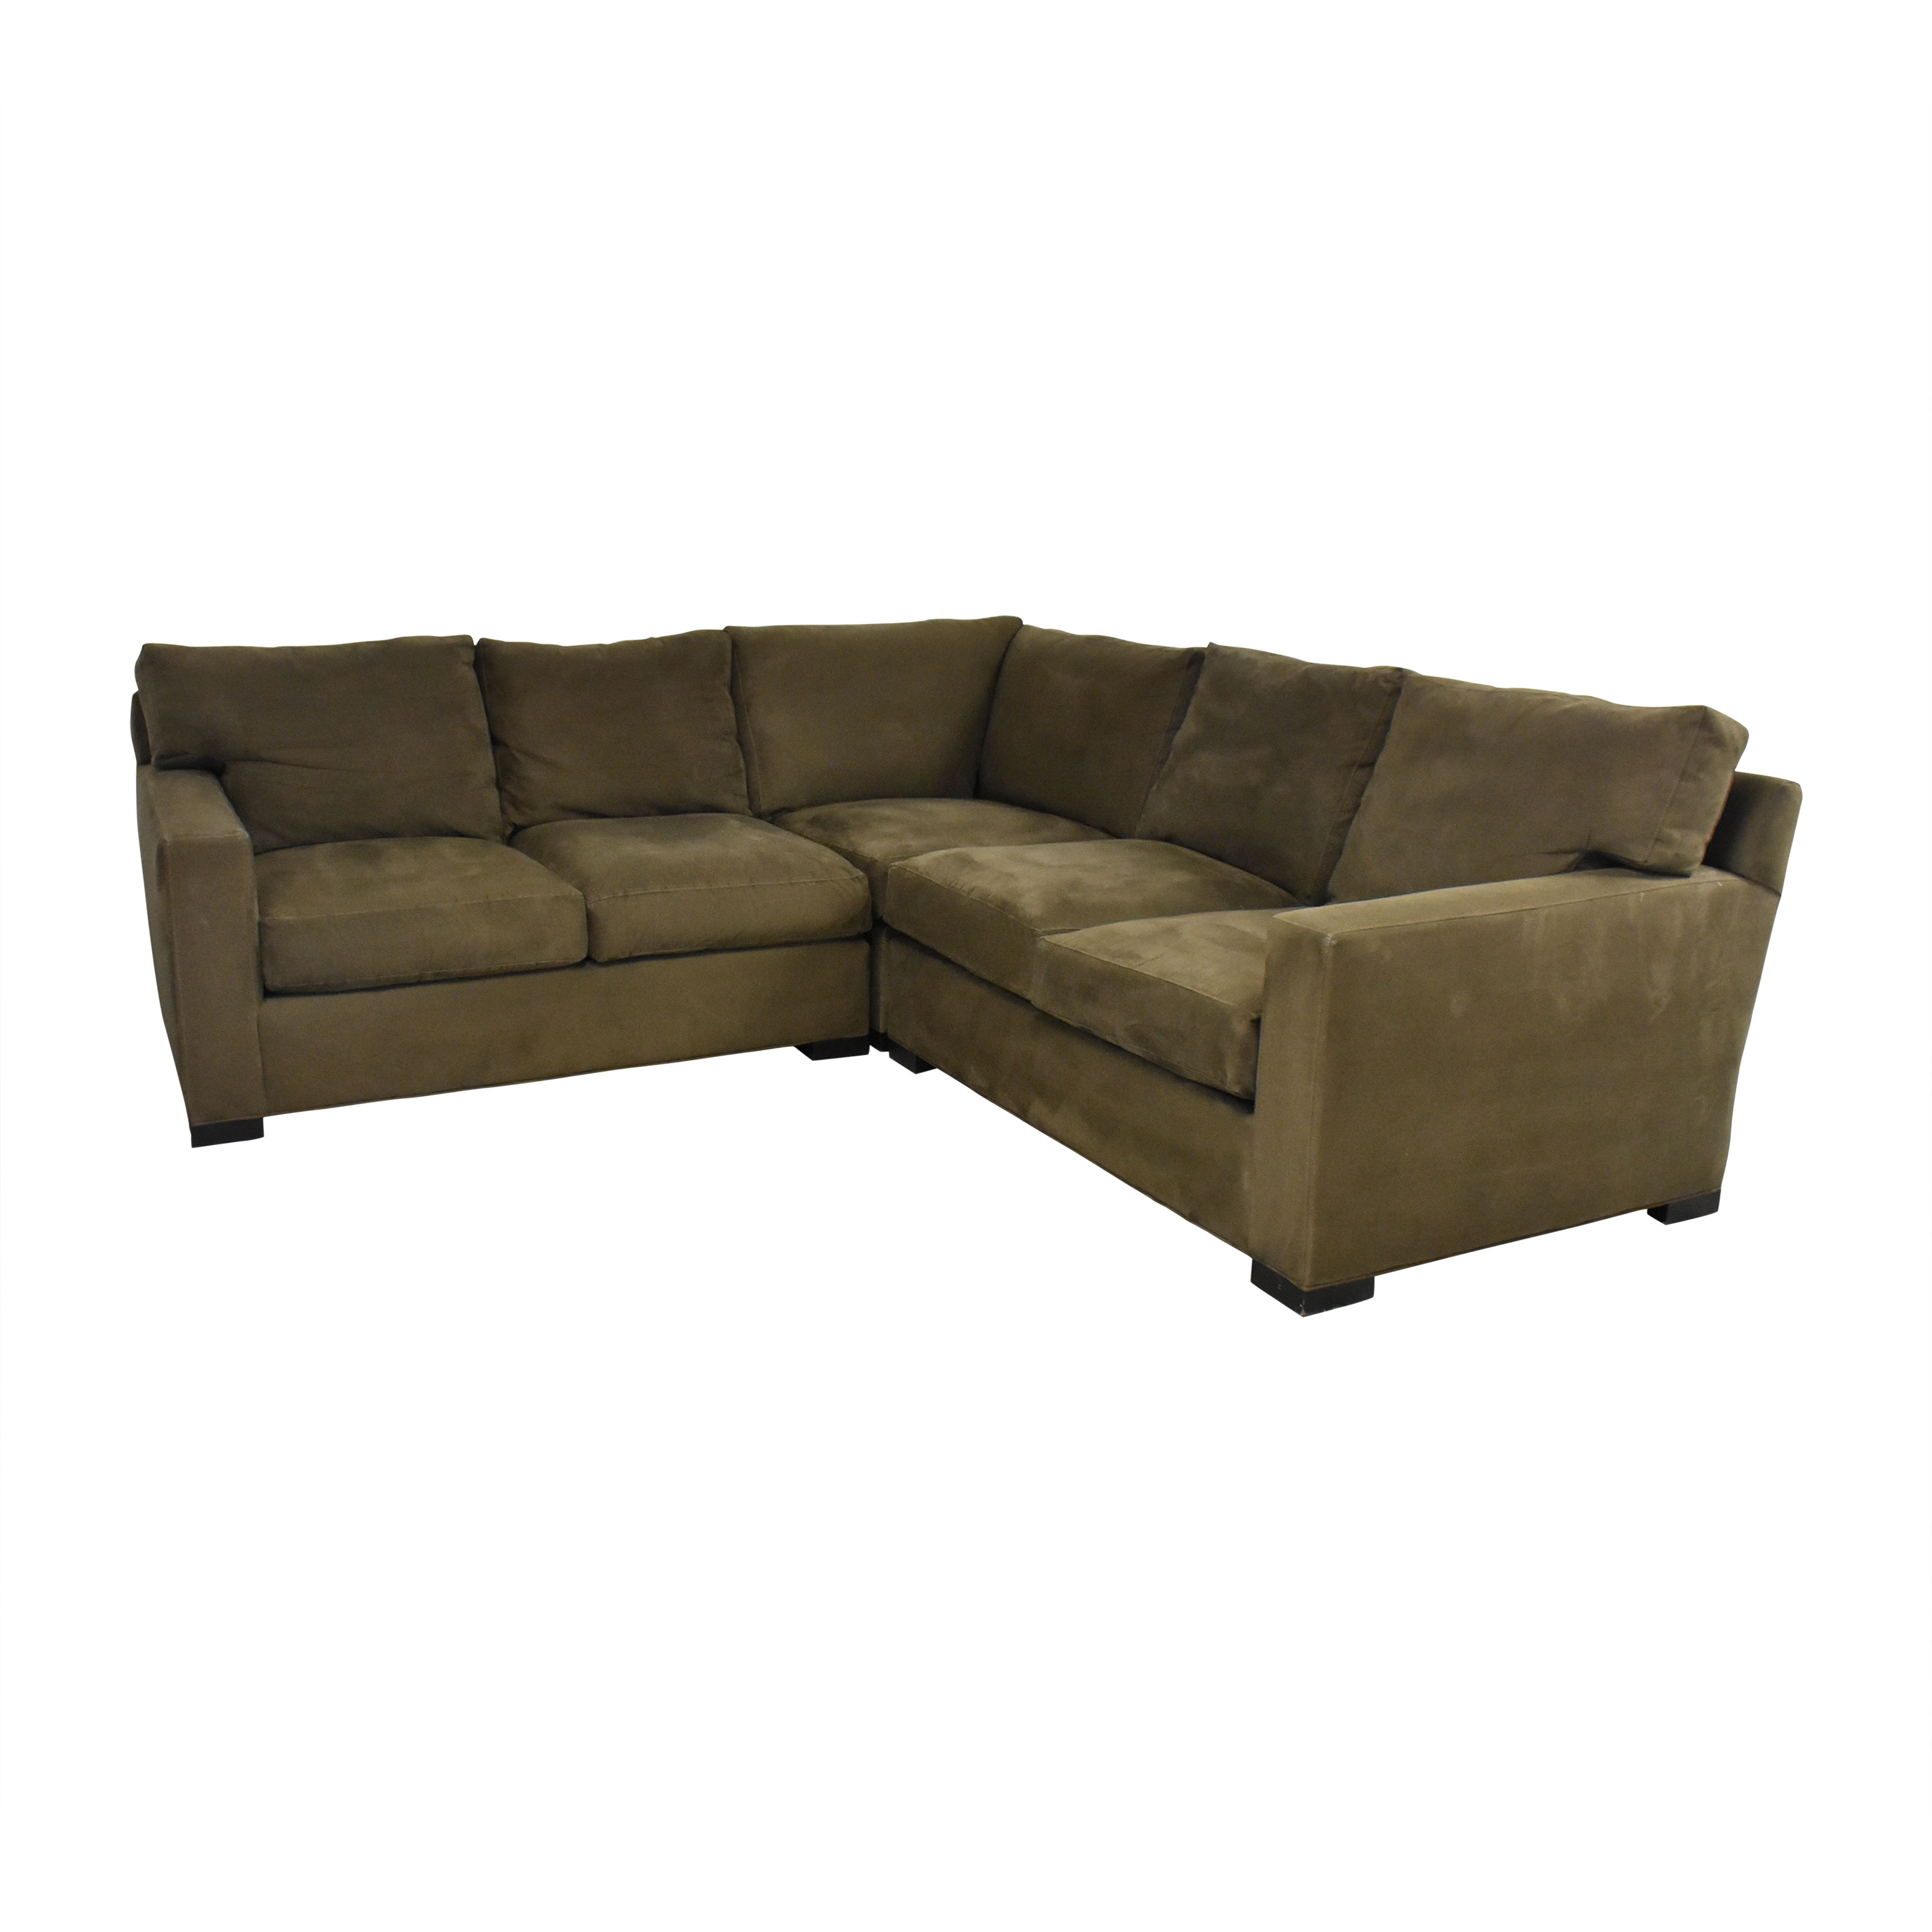 buy Crate & Barrel Axis Three Piece Sectional Sofa Crate & Barrel Sofas